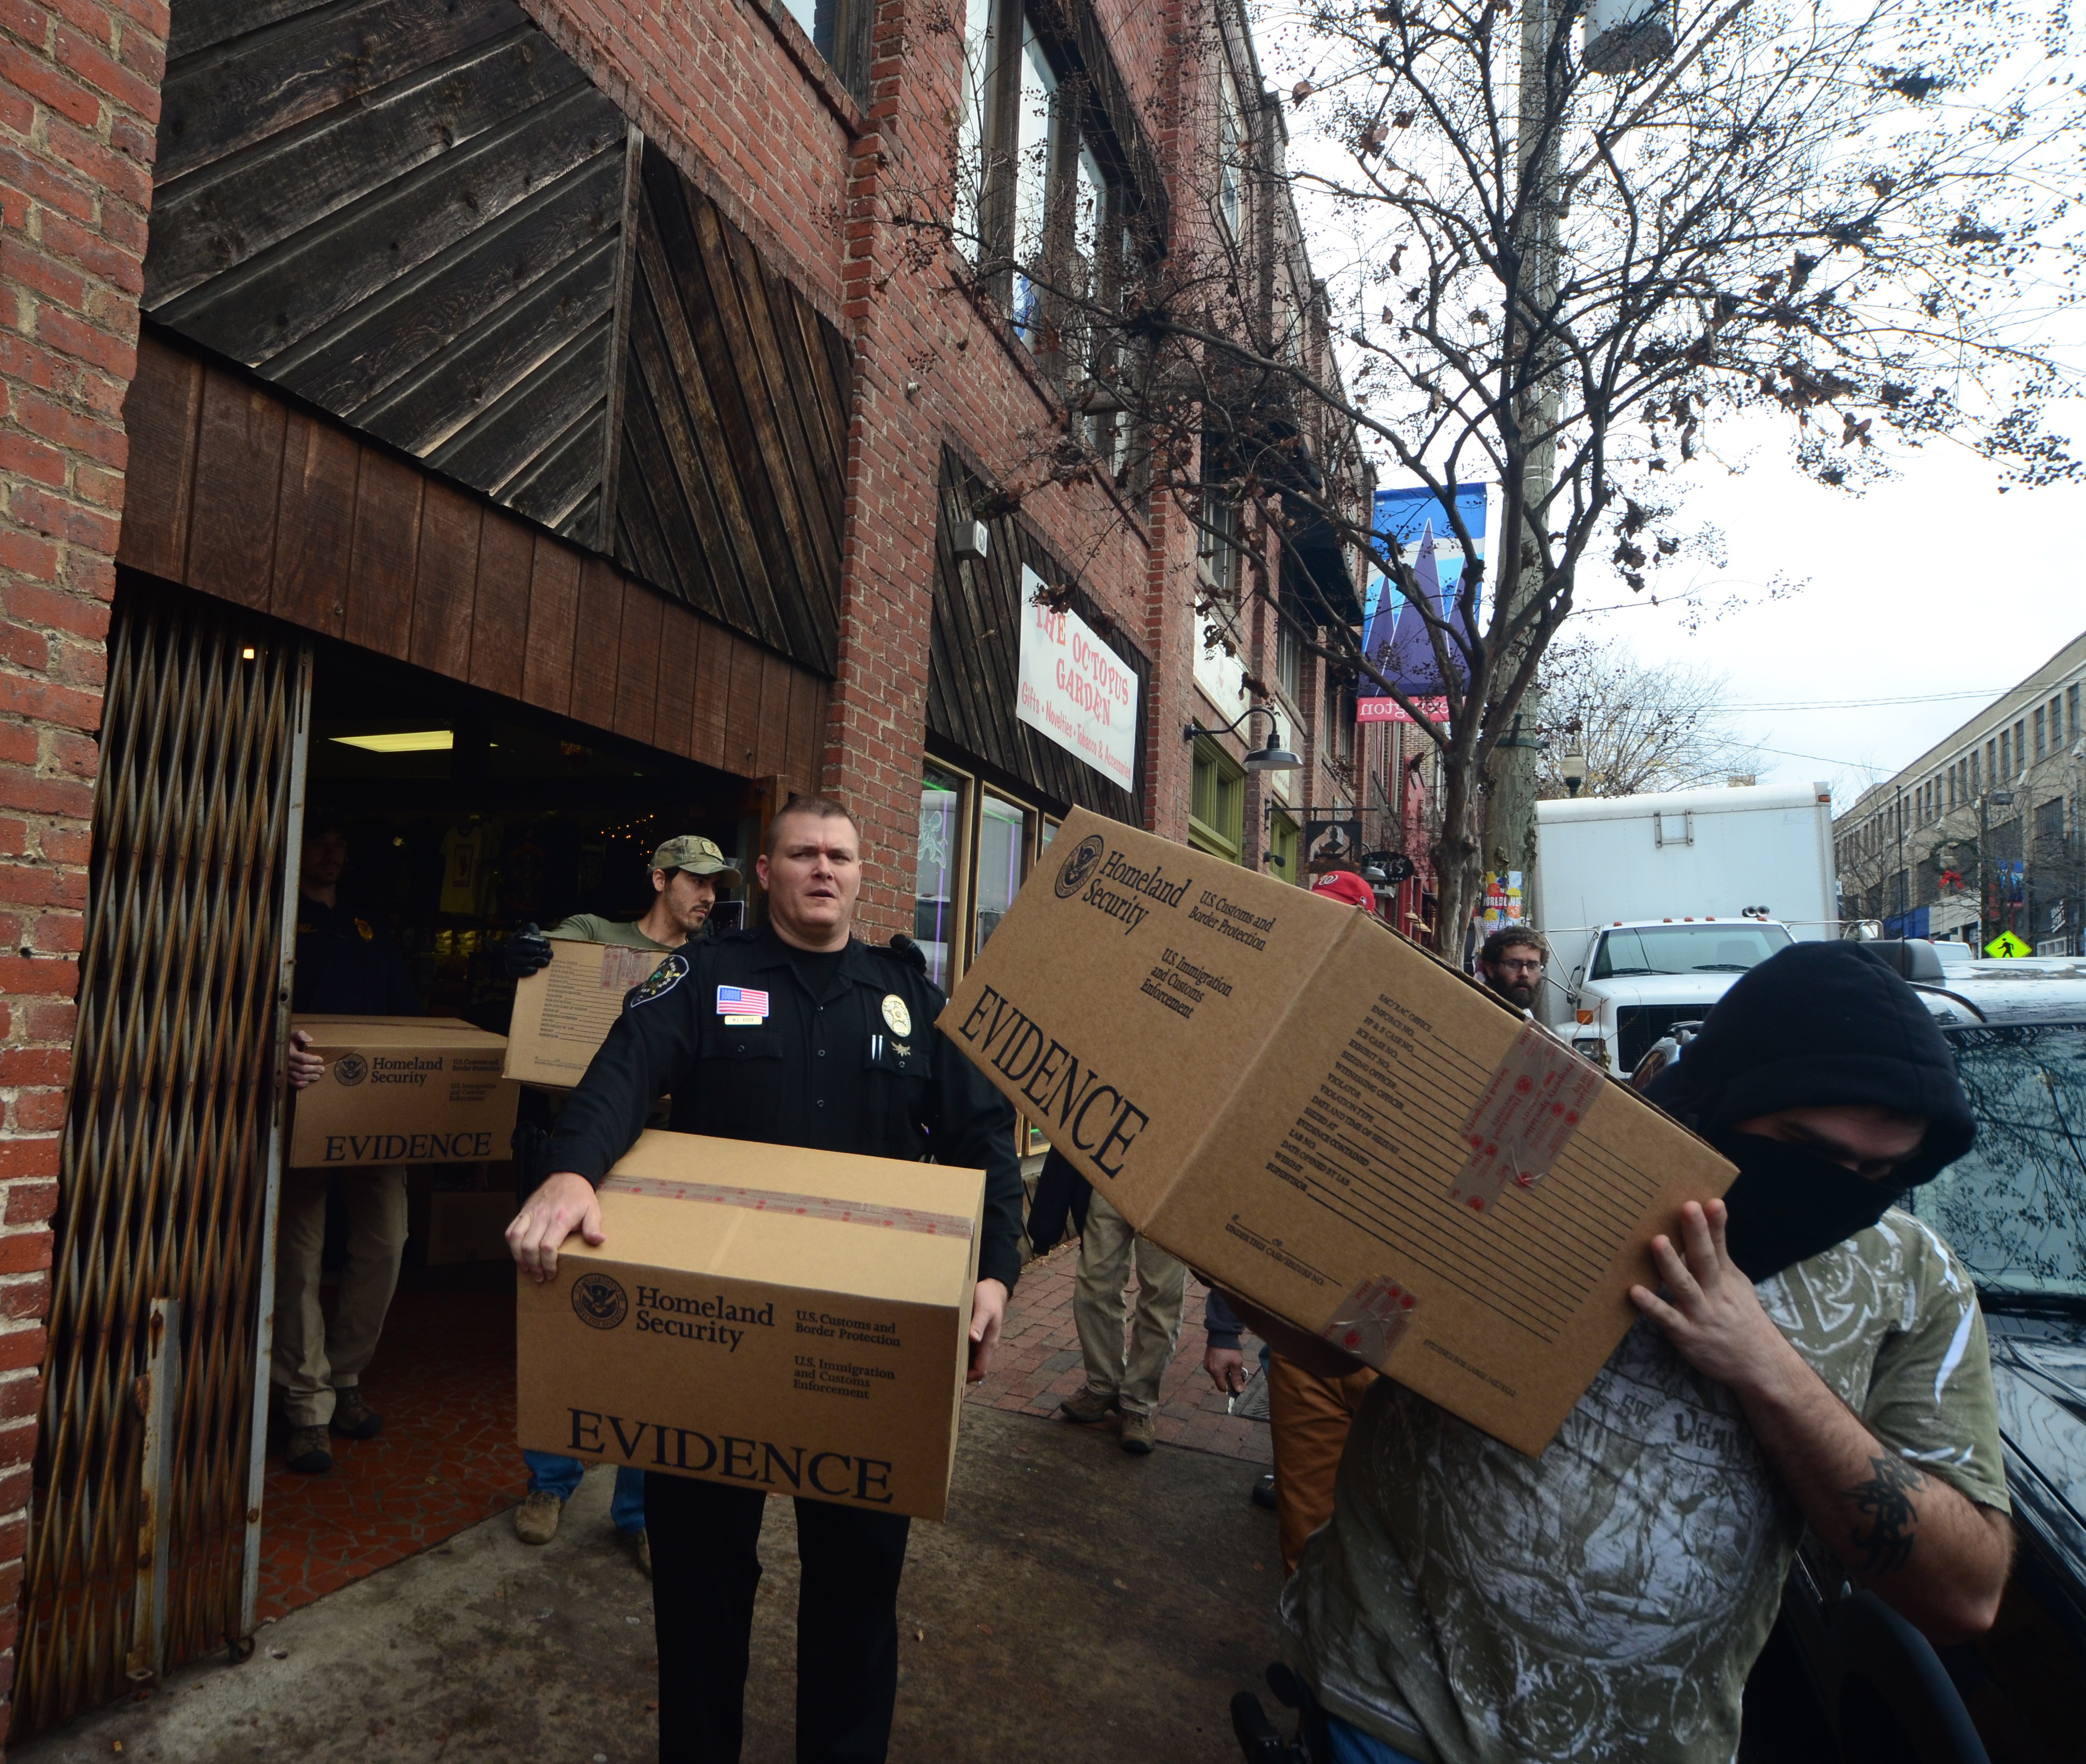 APD, Homeland Security, Buncombe/Henderson Sheriff's offices raid Octopus Garden smoke shop locations